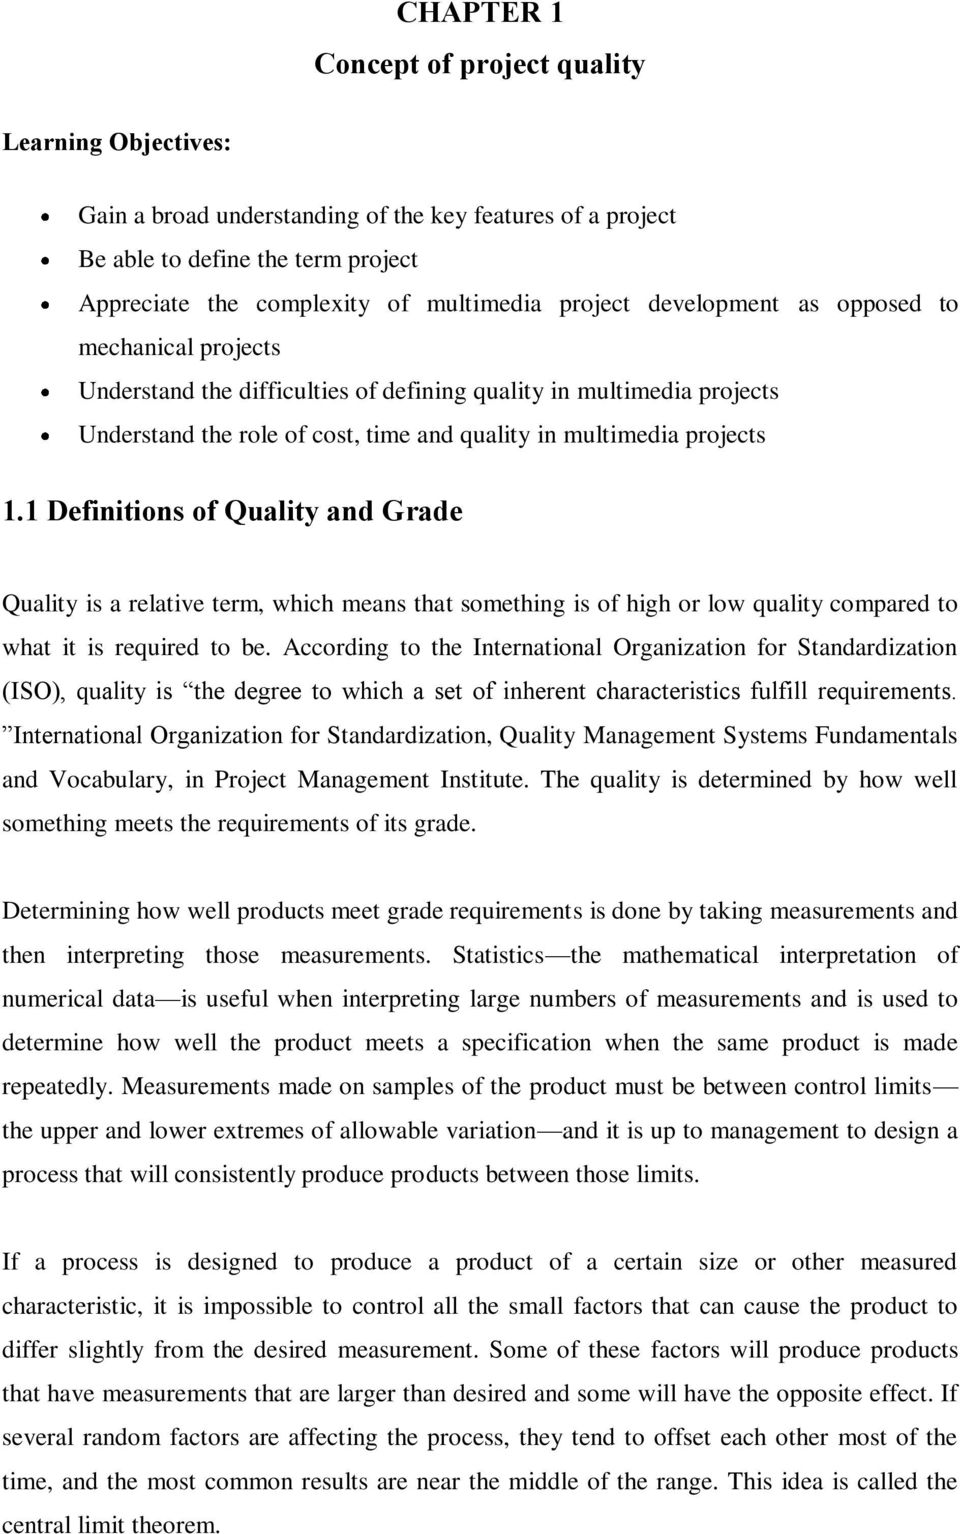 Quality management is a process without which production is impossible